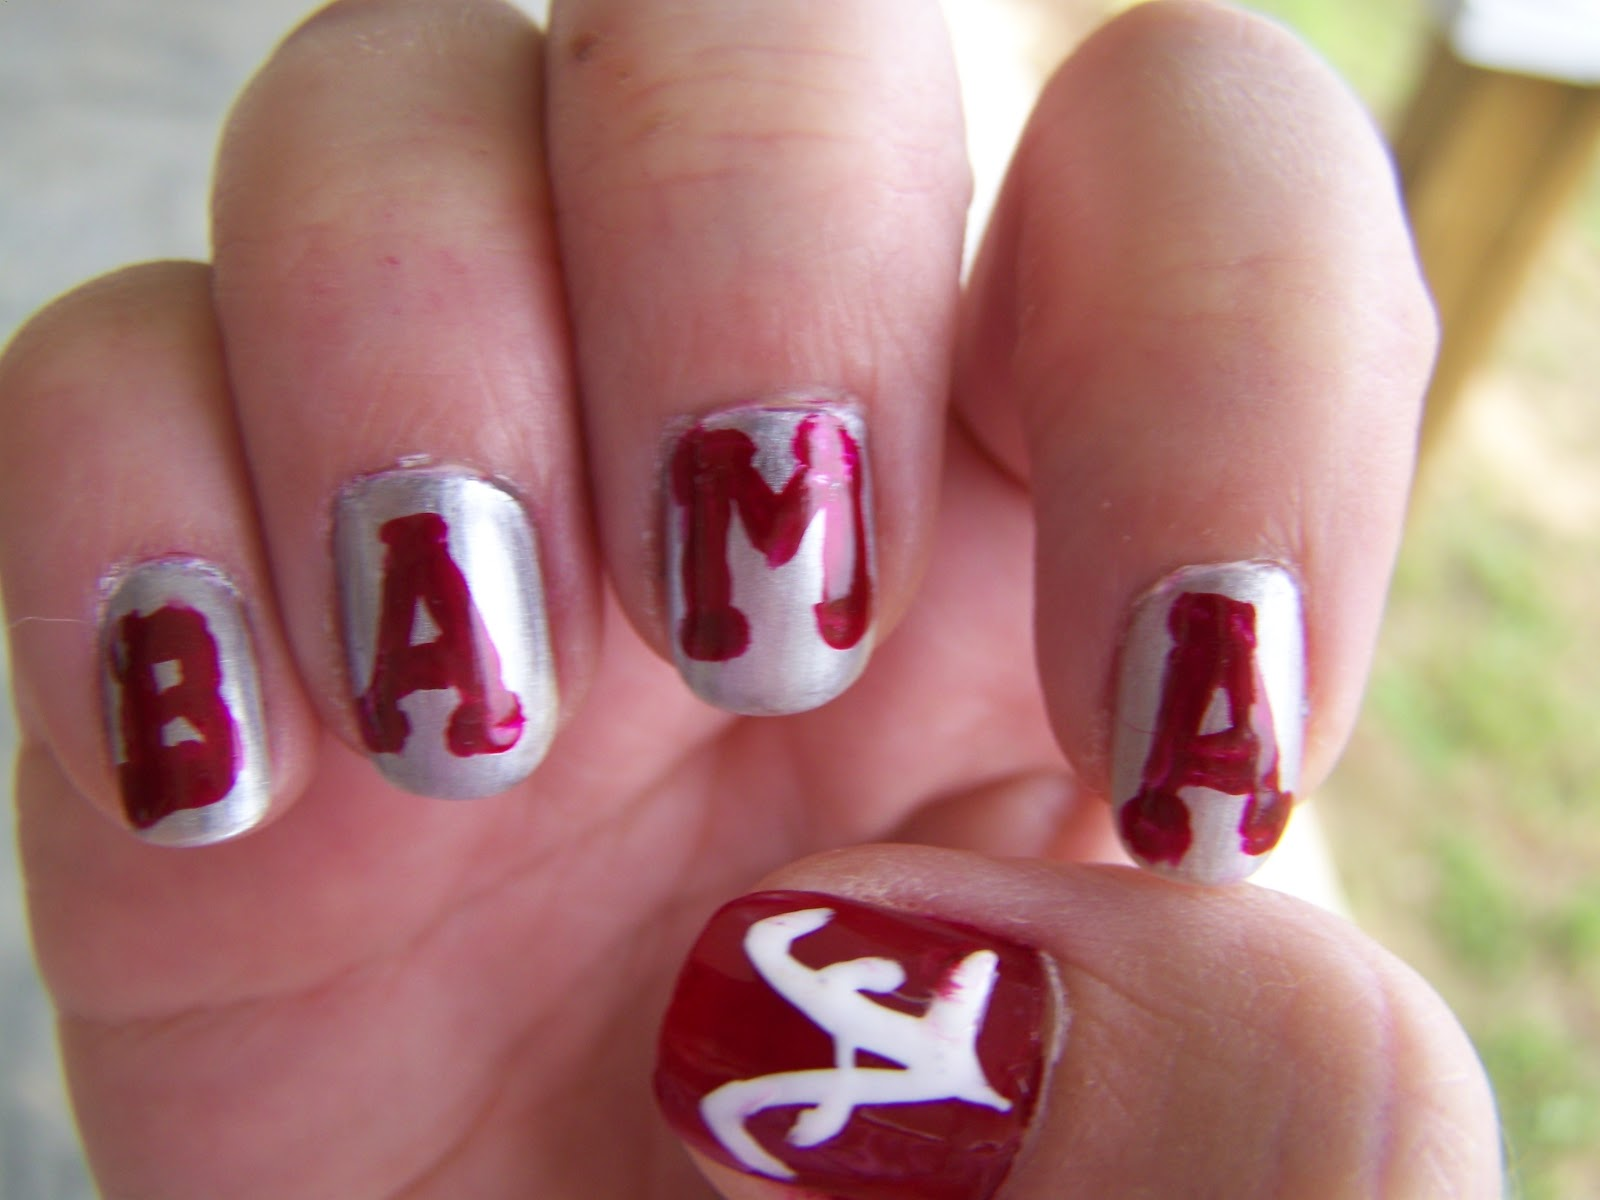 NailArt - Southern Style: Roll Tide Roll